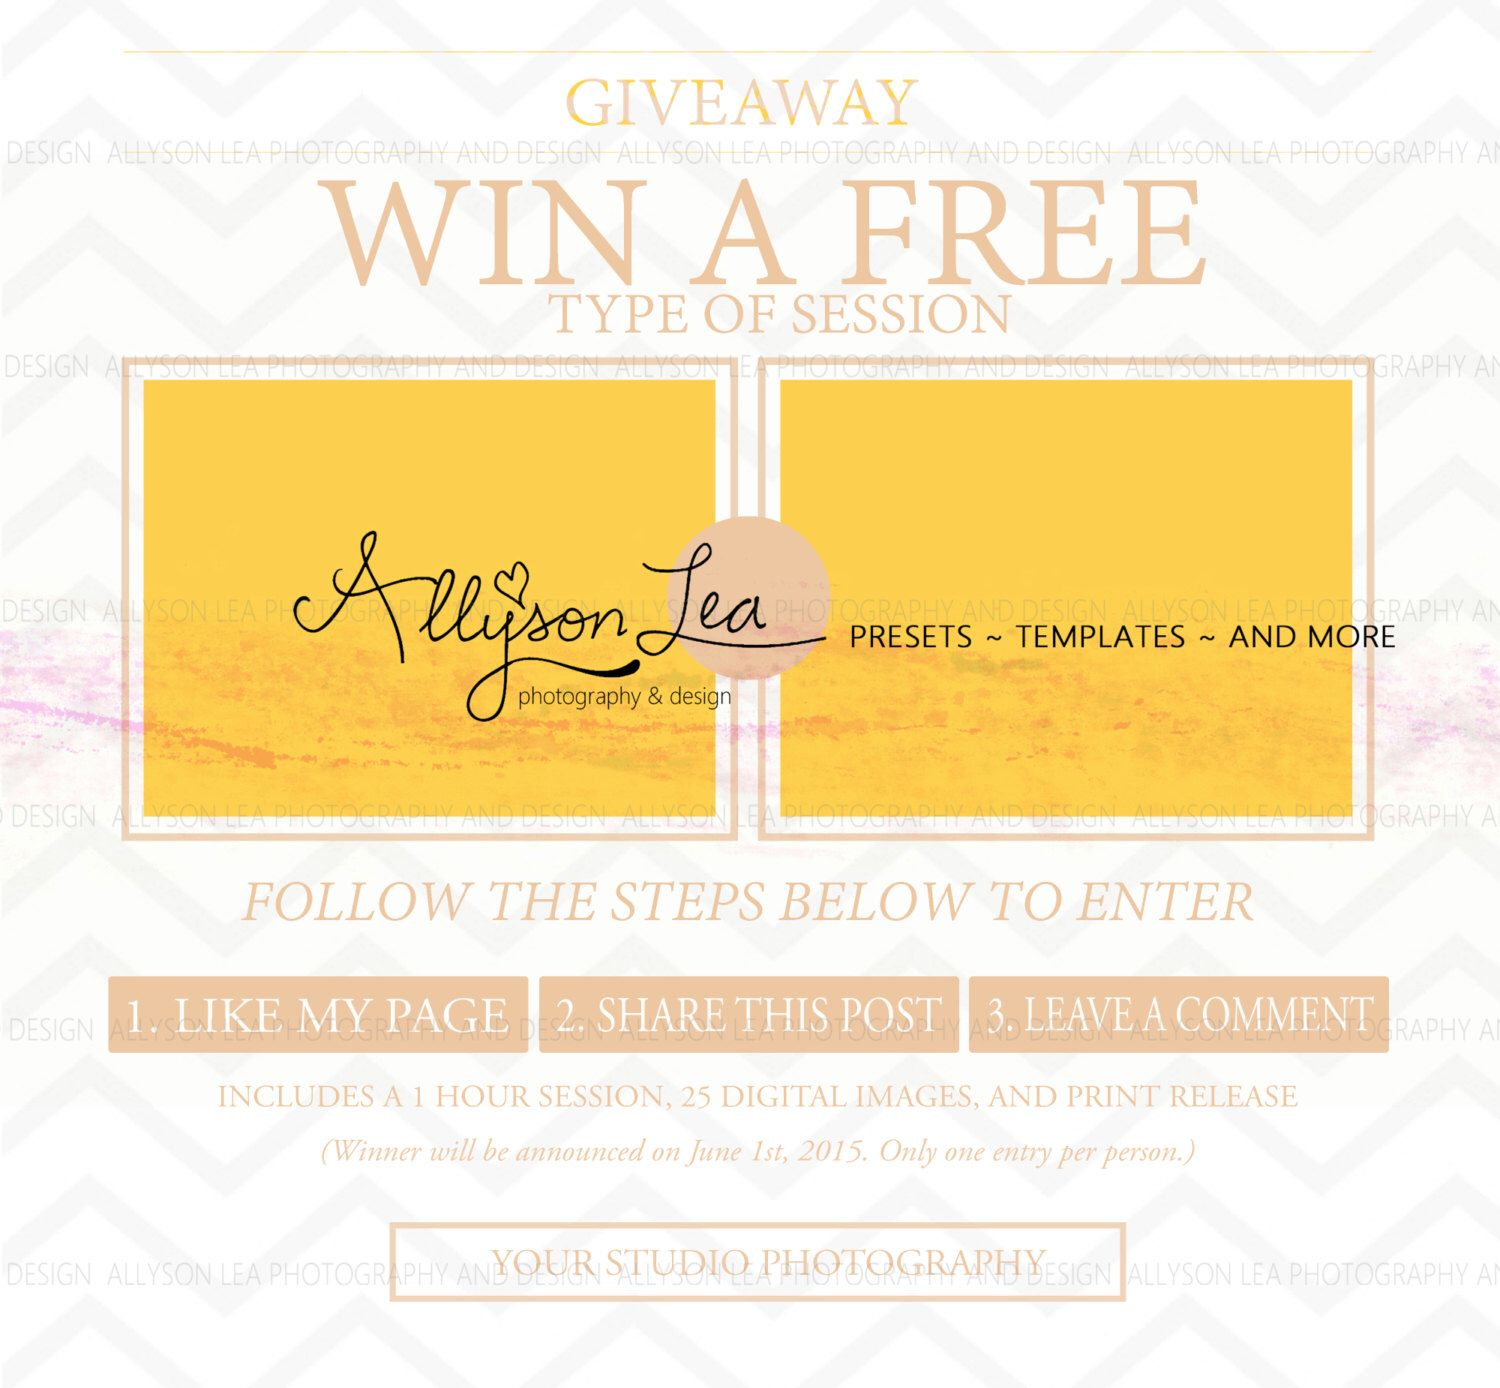 giveaway template by allysonleadesign on com giveaway template by allysonleadesign on com